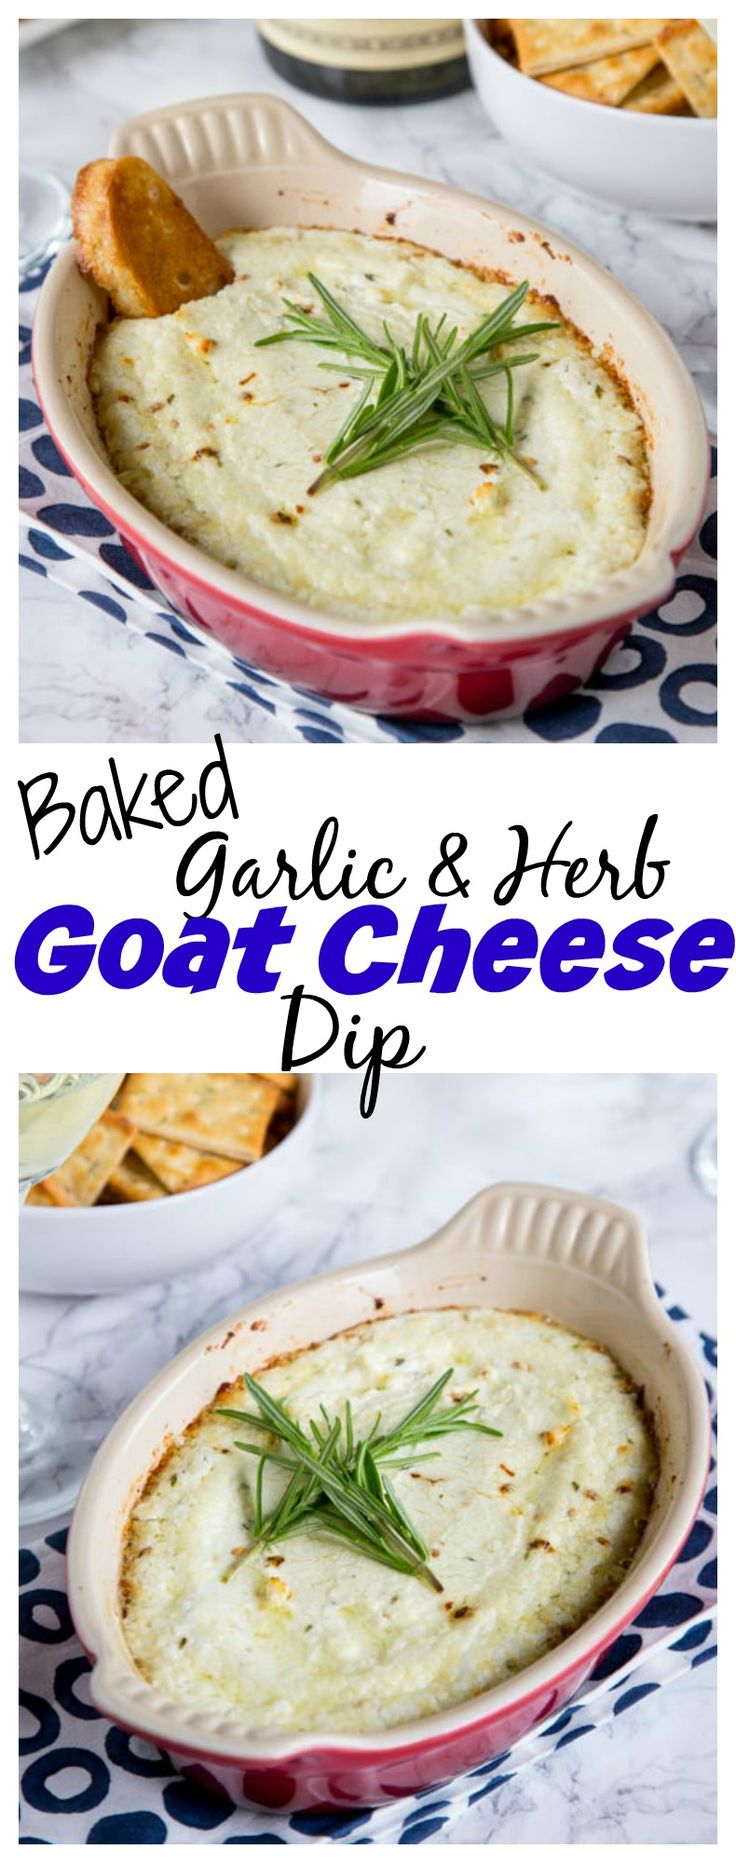 Garlic Herb Baked Goat Cheese Dip – melty, cheesy baked goat cheese dip with lots of garlic and herbs! Pair with a glass of wine and you have the perfect appetizer.